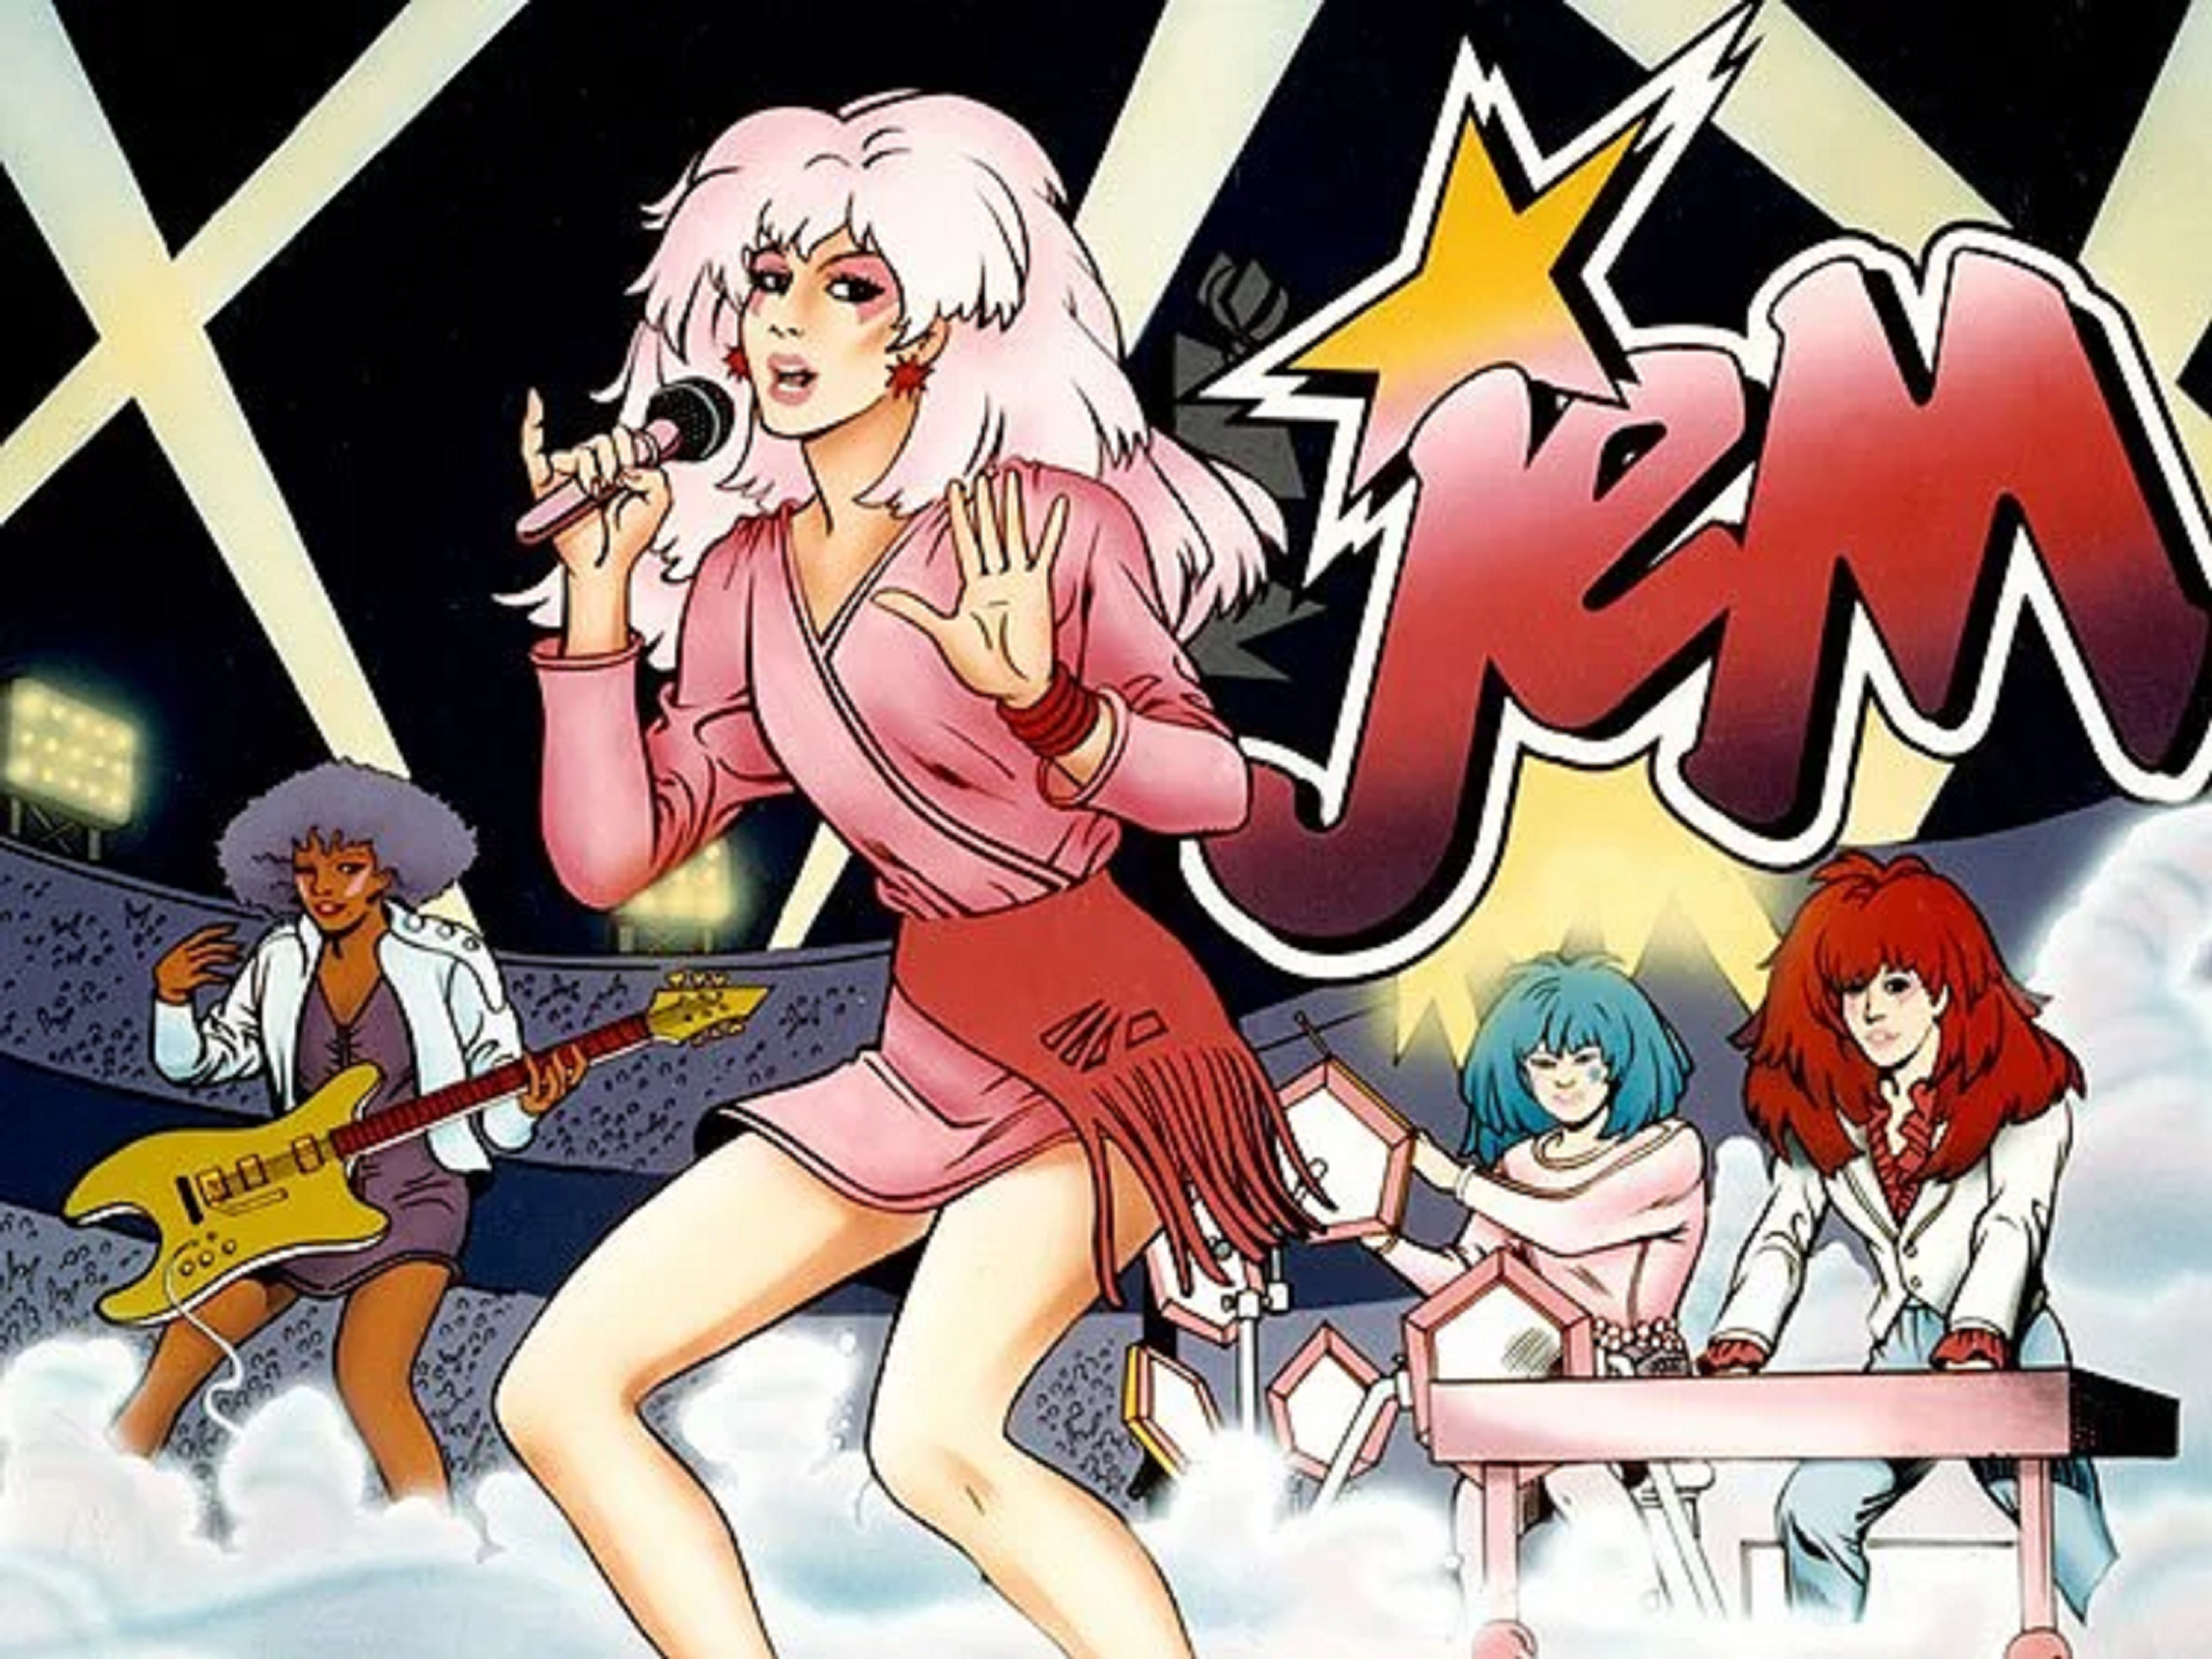 80s Cartoon Jem and the Holograms: Songs That Are Still Catchy